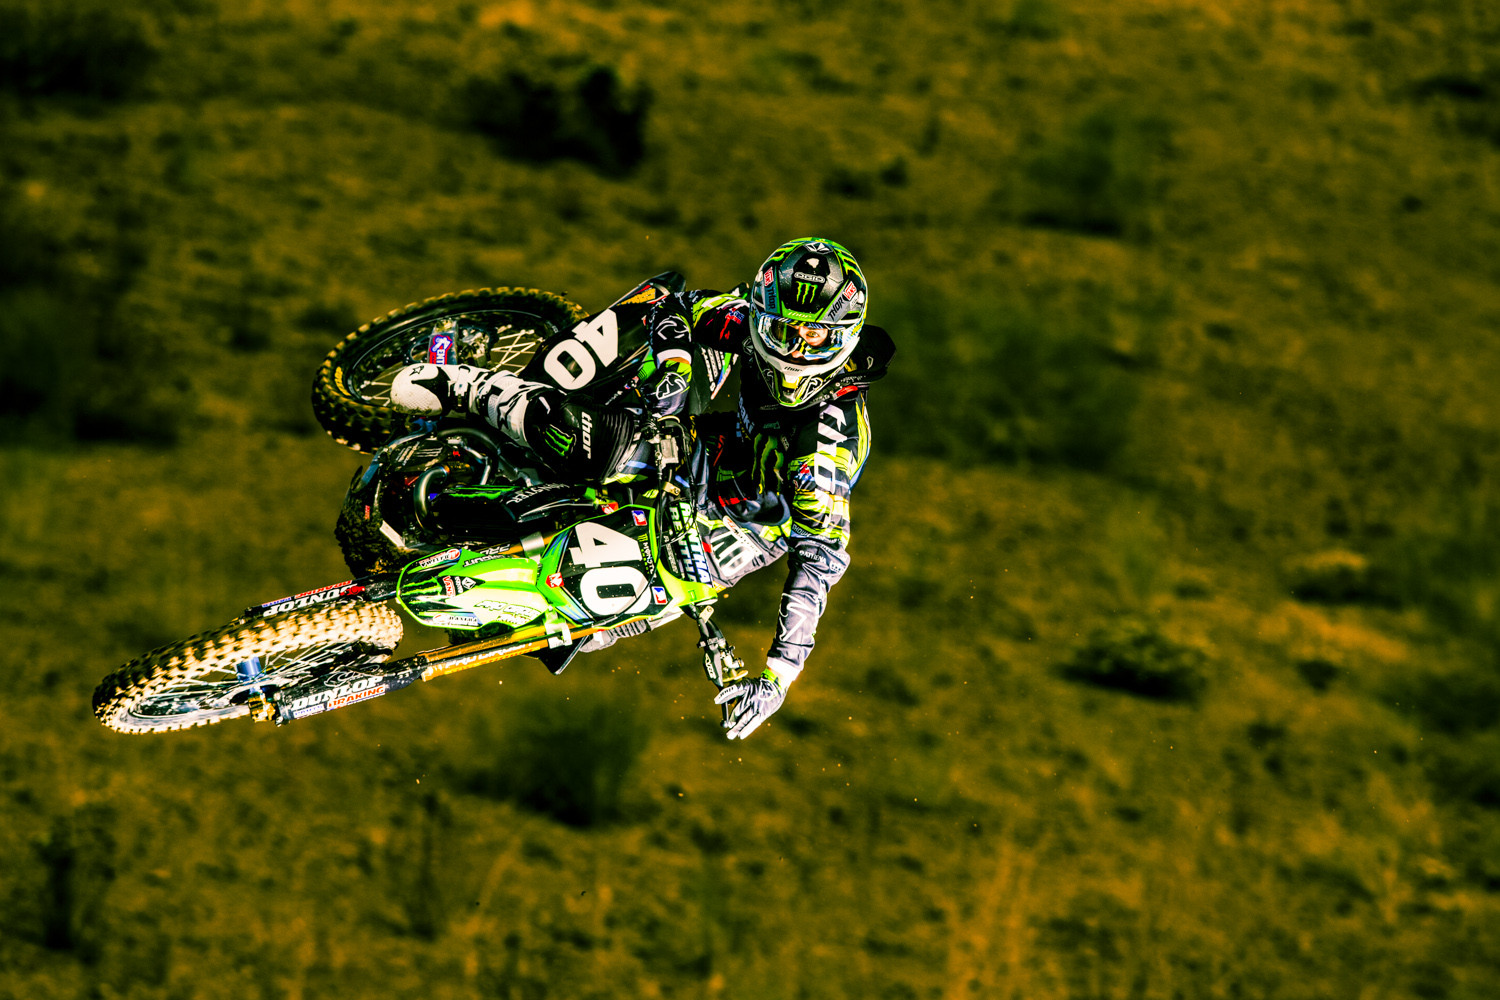 Martin Davalos - Monster Energy Pro Circuit Kawasaki - Motocross Pictures - Vital MX